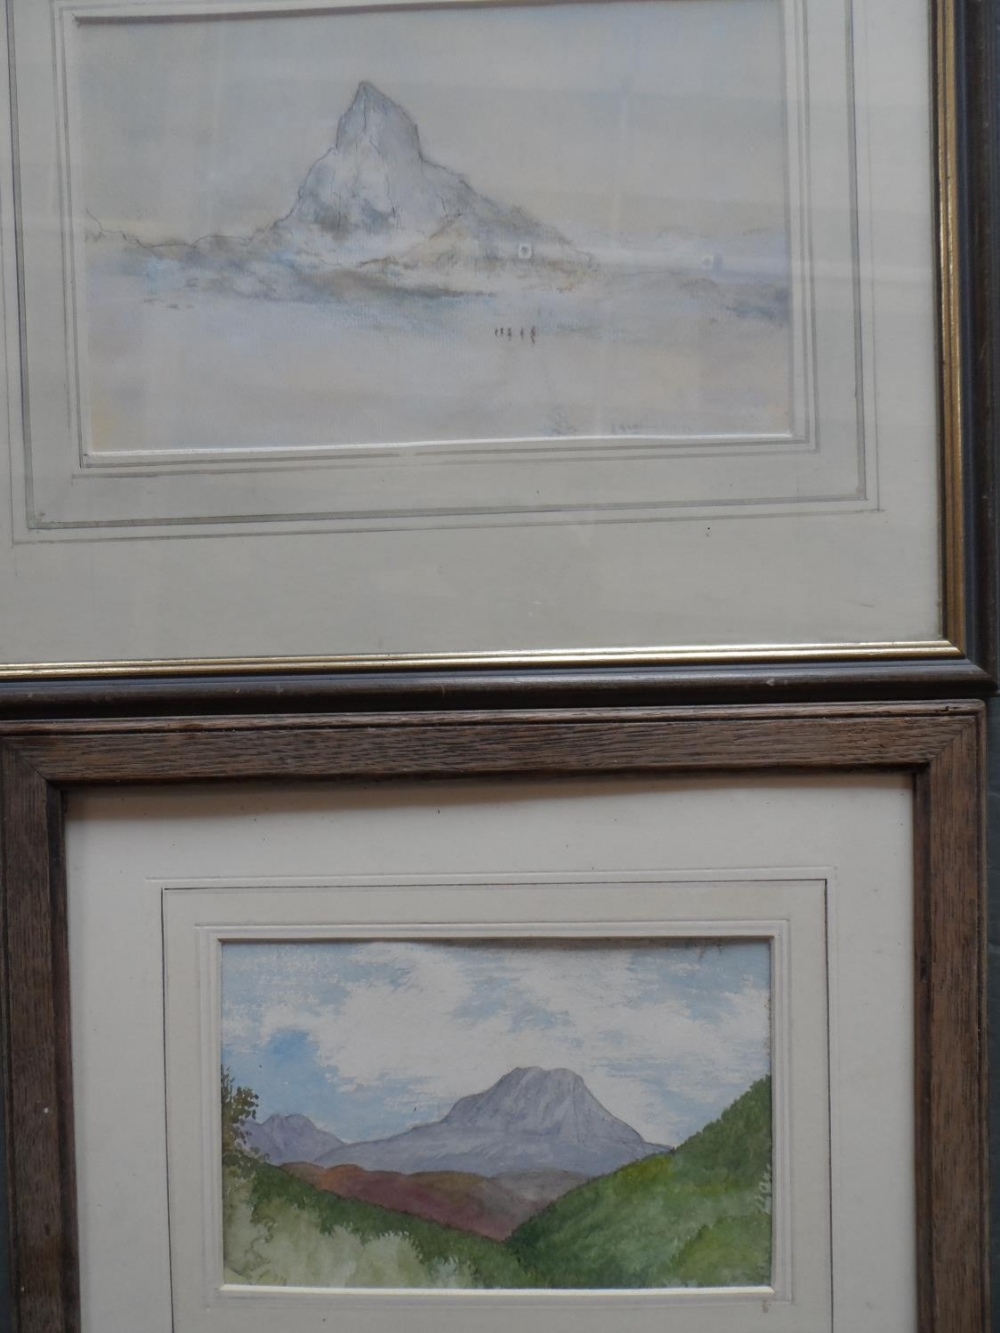 Six Alpine scene watercolours and drawing, all by differing artists, all framed (6) - Image 2 of 6